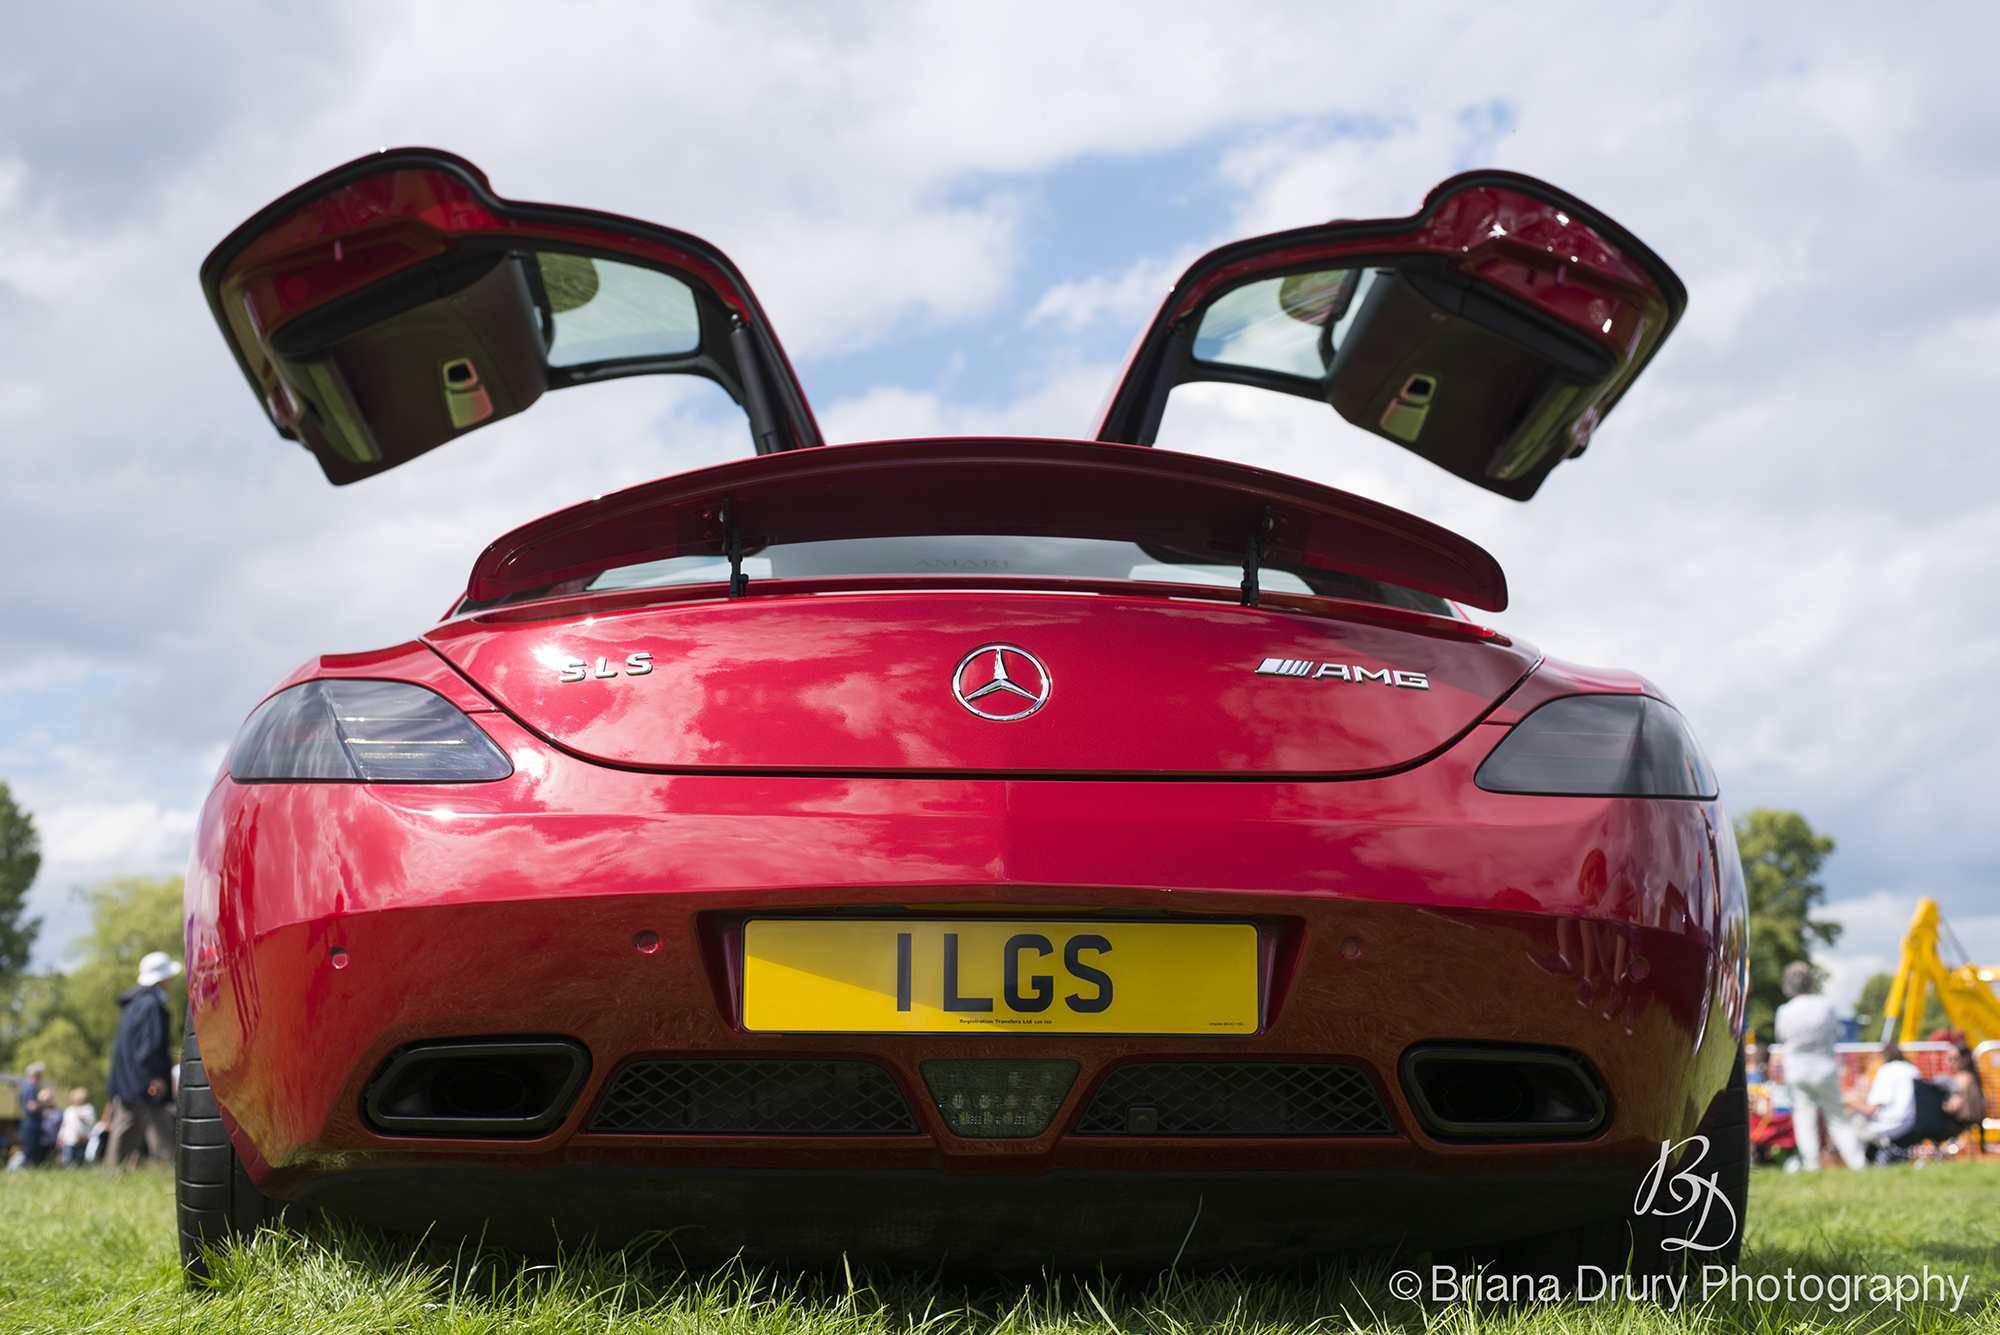 Cars_in_the_Park 1479